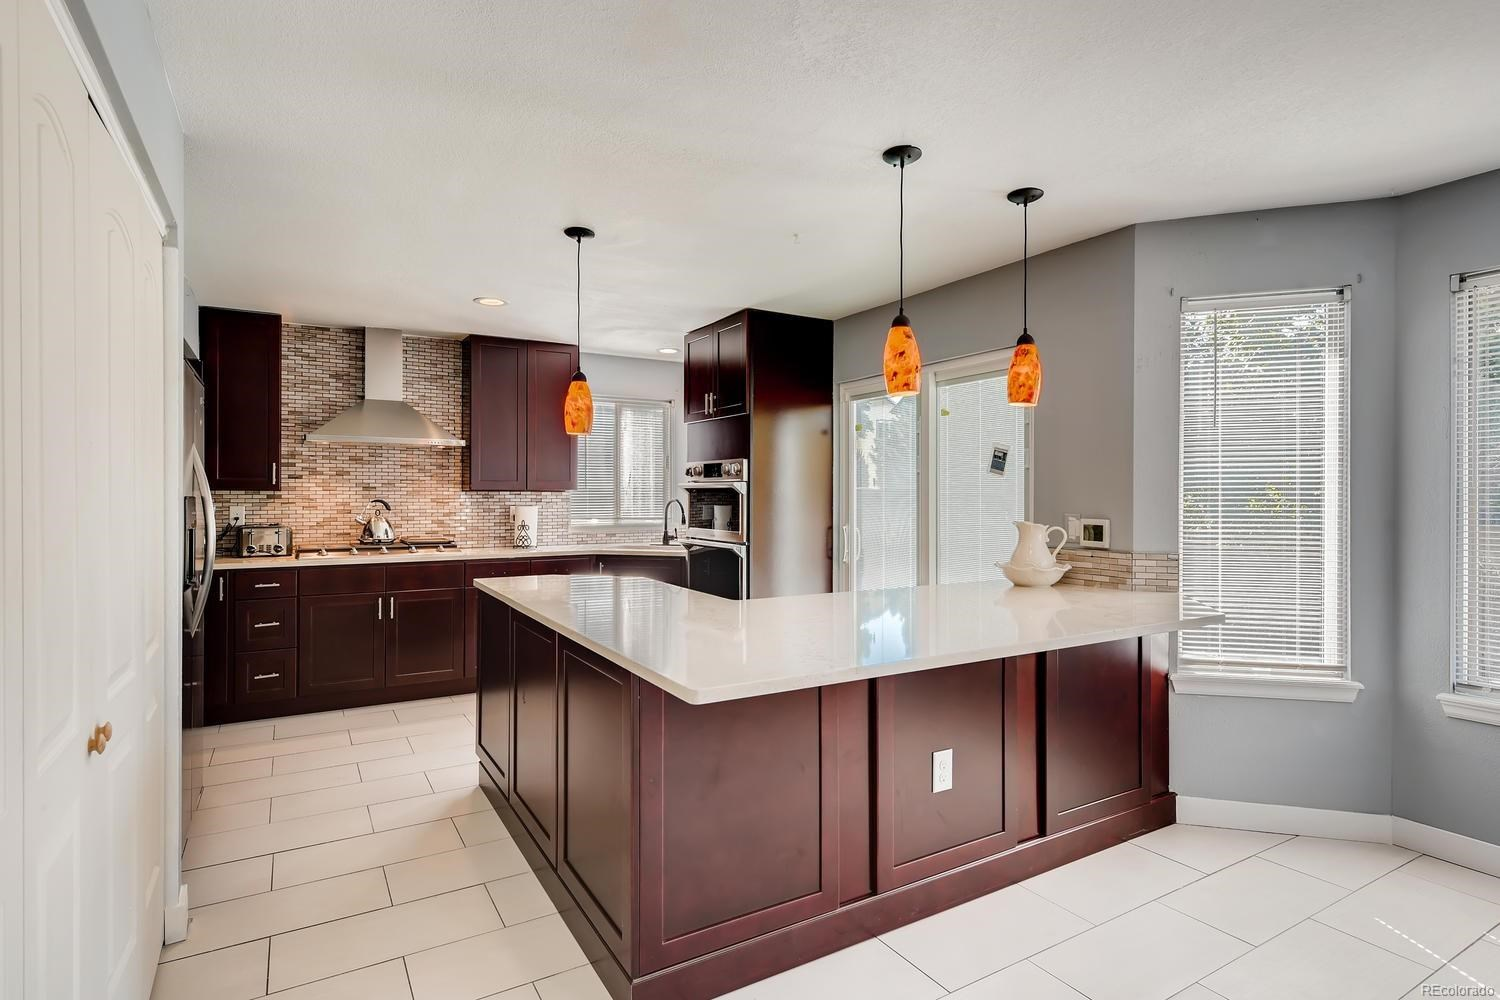 MLS# 6533344 - 3 - 8353 White Cloud Court, Highlands Ranch, CO 80126